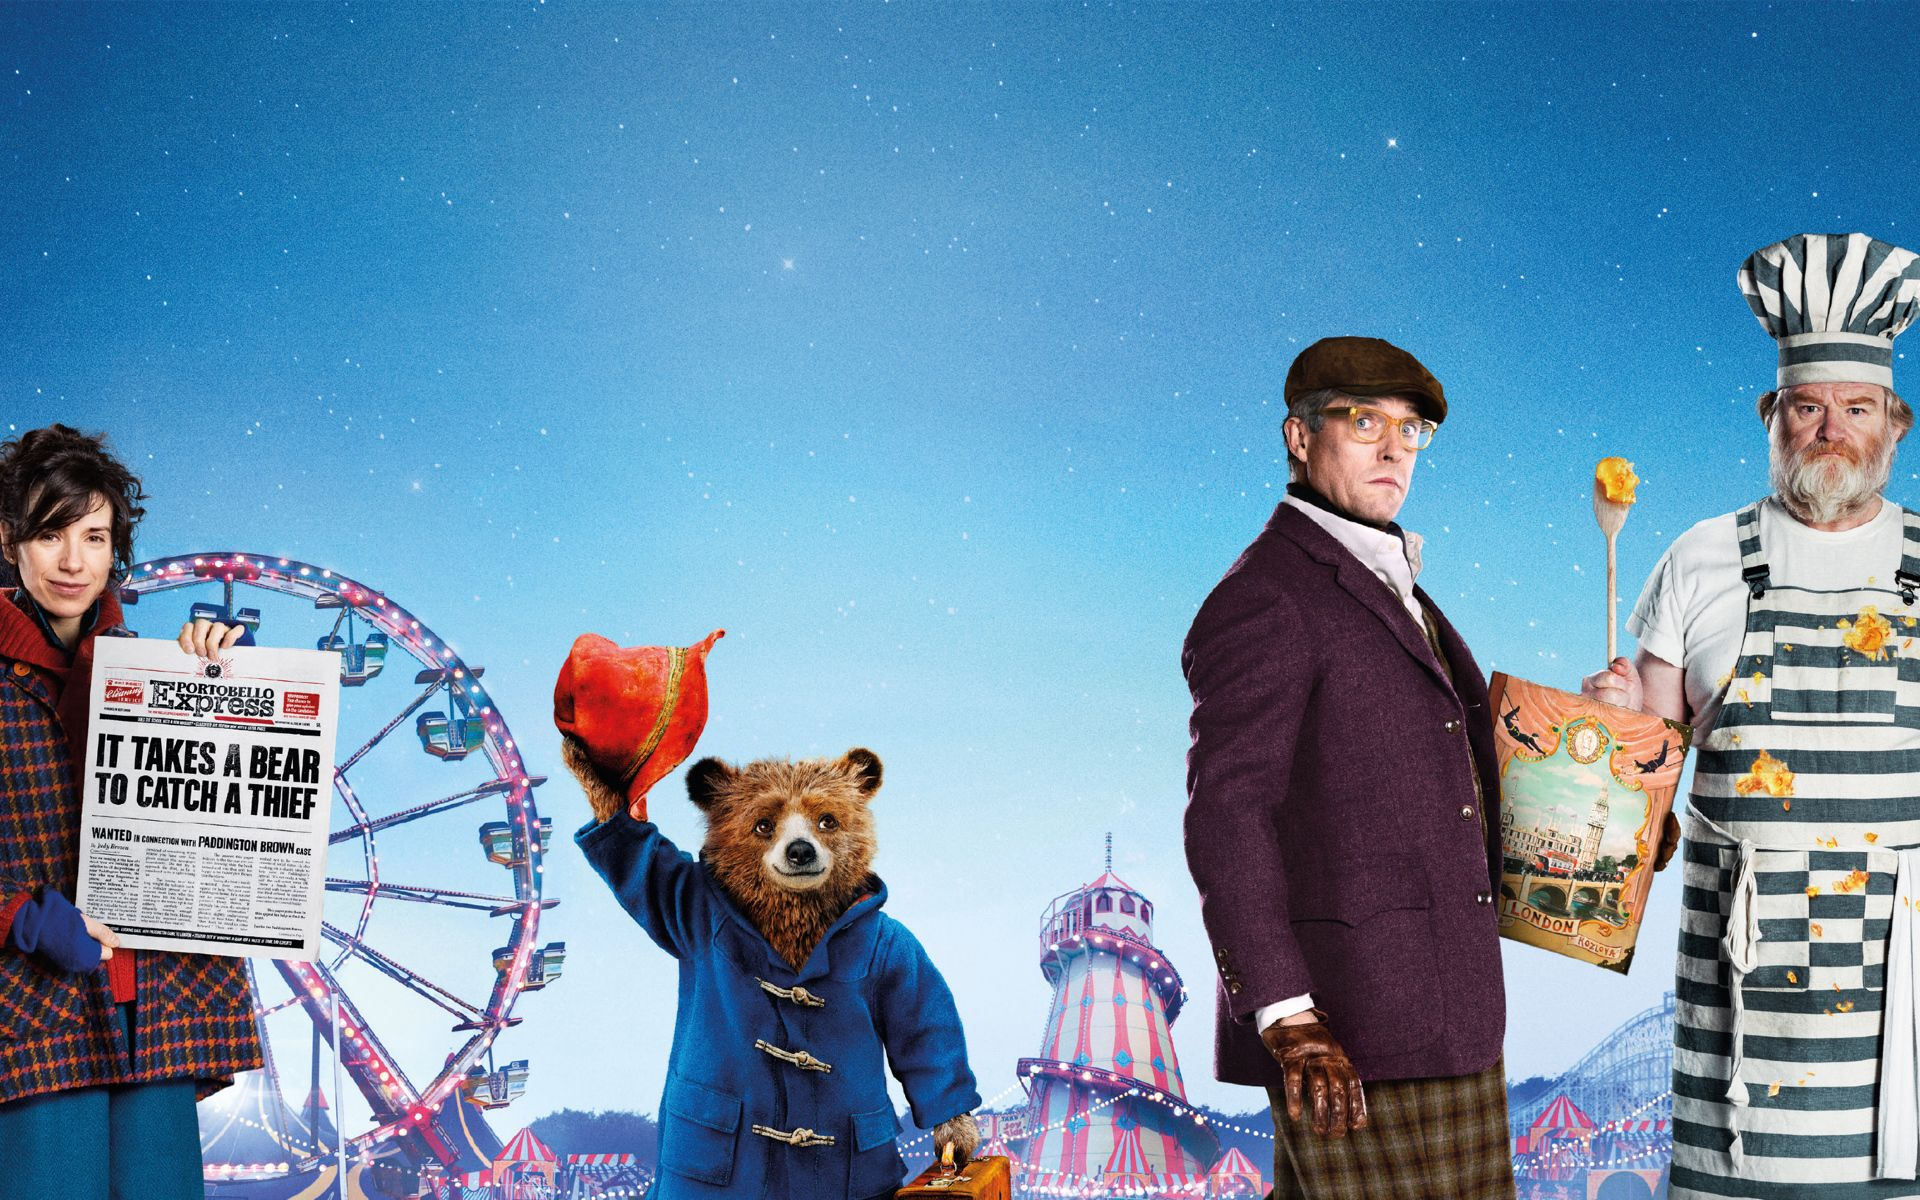 Download Paddington 2 Movie 2017 5120x2880 Resolution, Full HD 2K ...